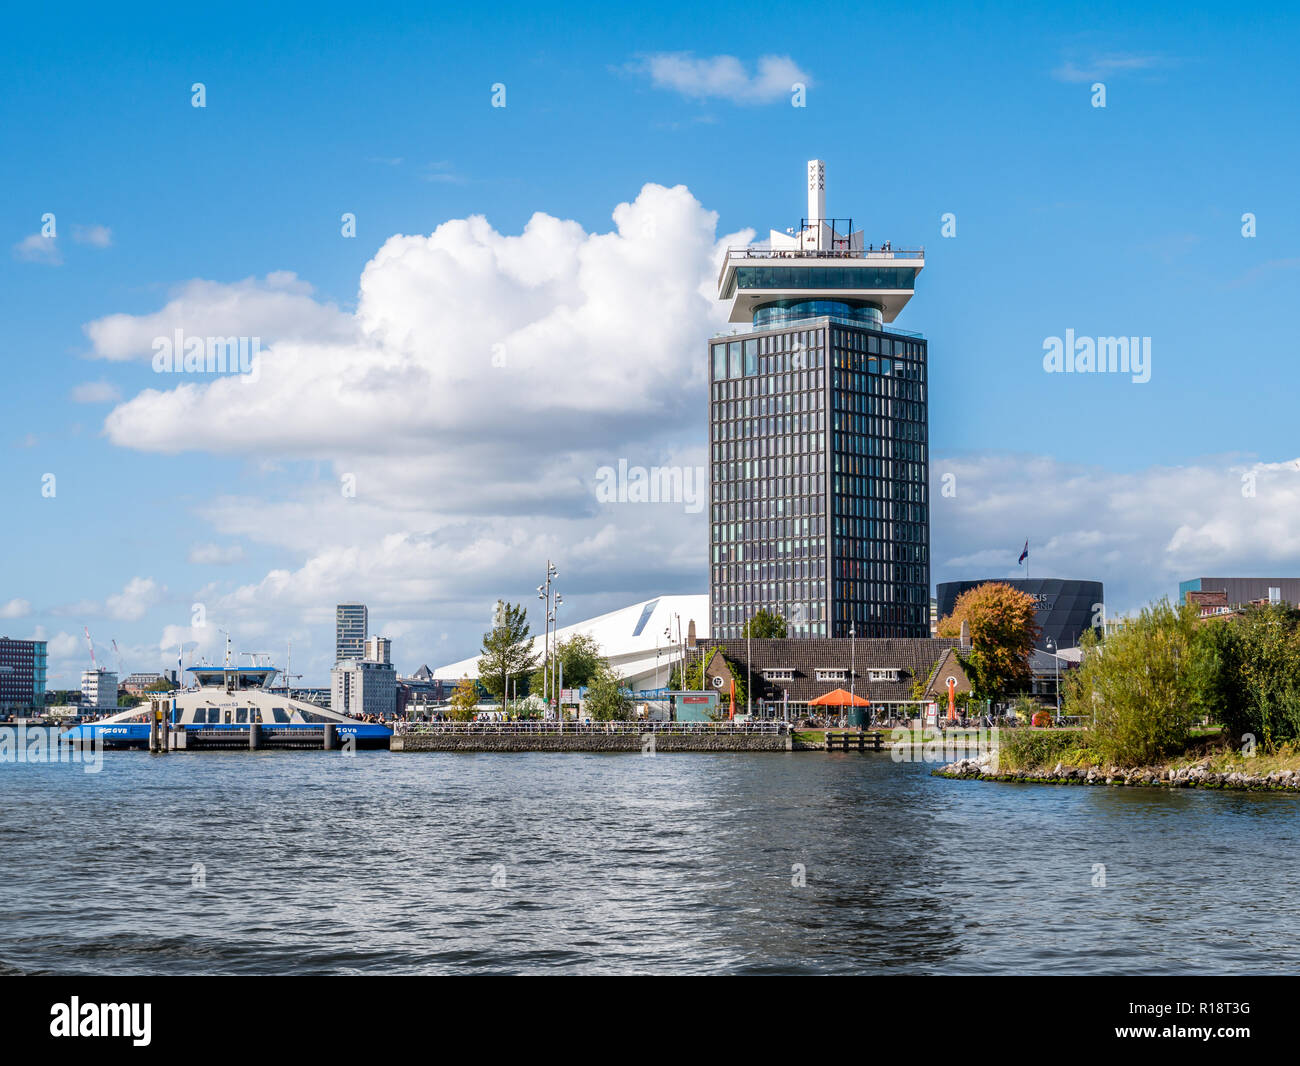 Adam Tower, Eye Filmmuseum and ferry from River IJ in Amsterdam, Netherlands - Stock Image